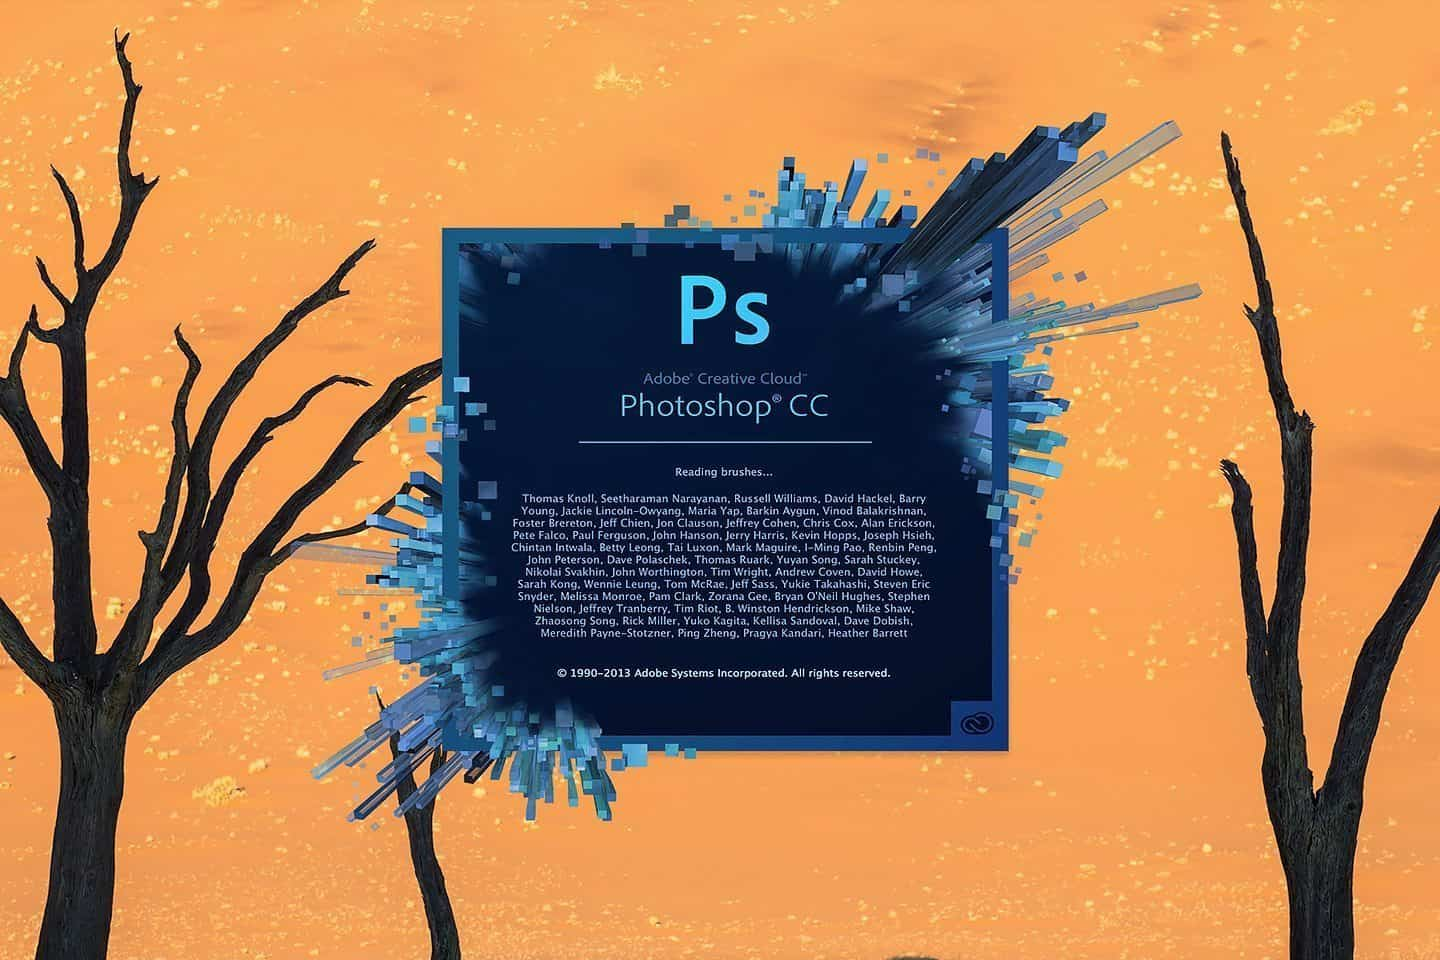 Starting Photoshop CC